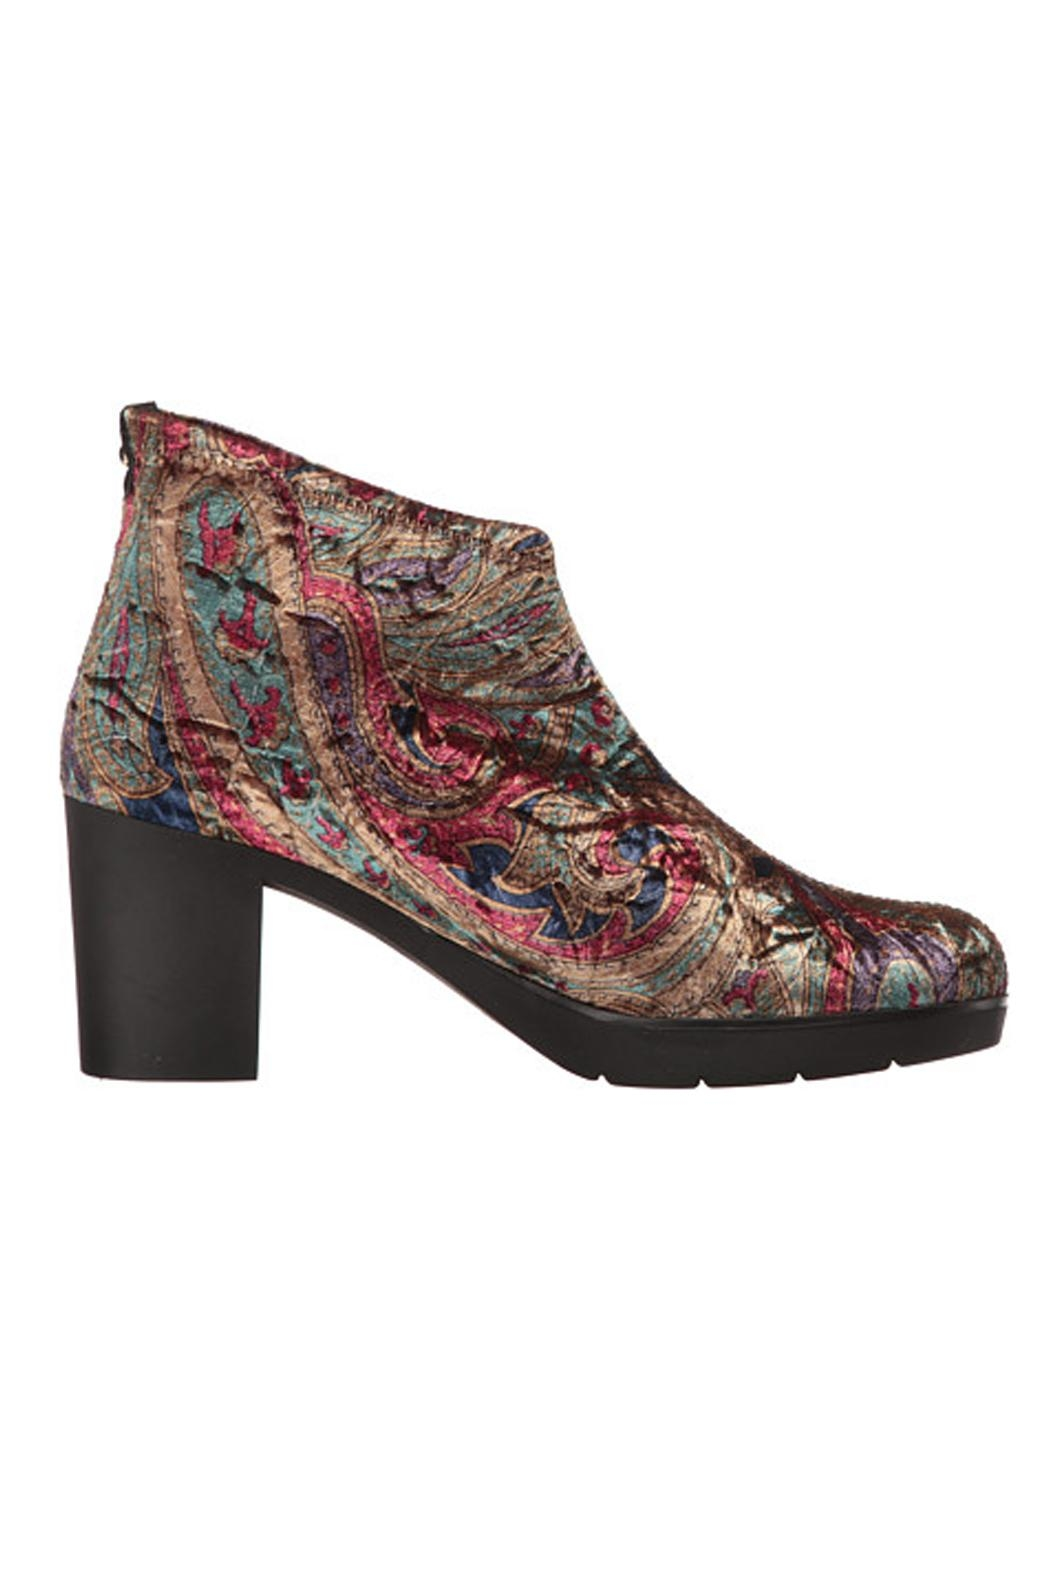 Toni Pons Finley Paisley Bootie - Front Full Image